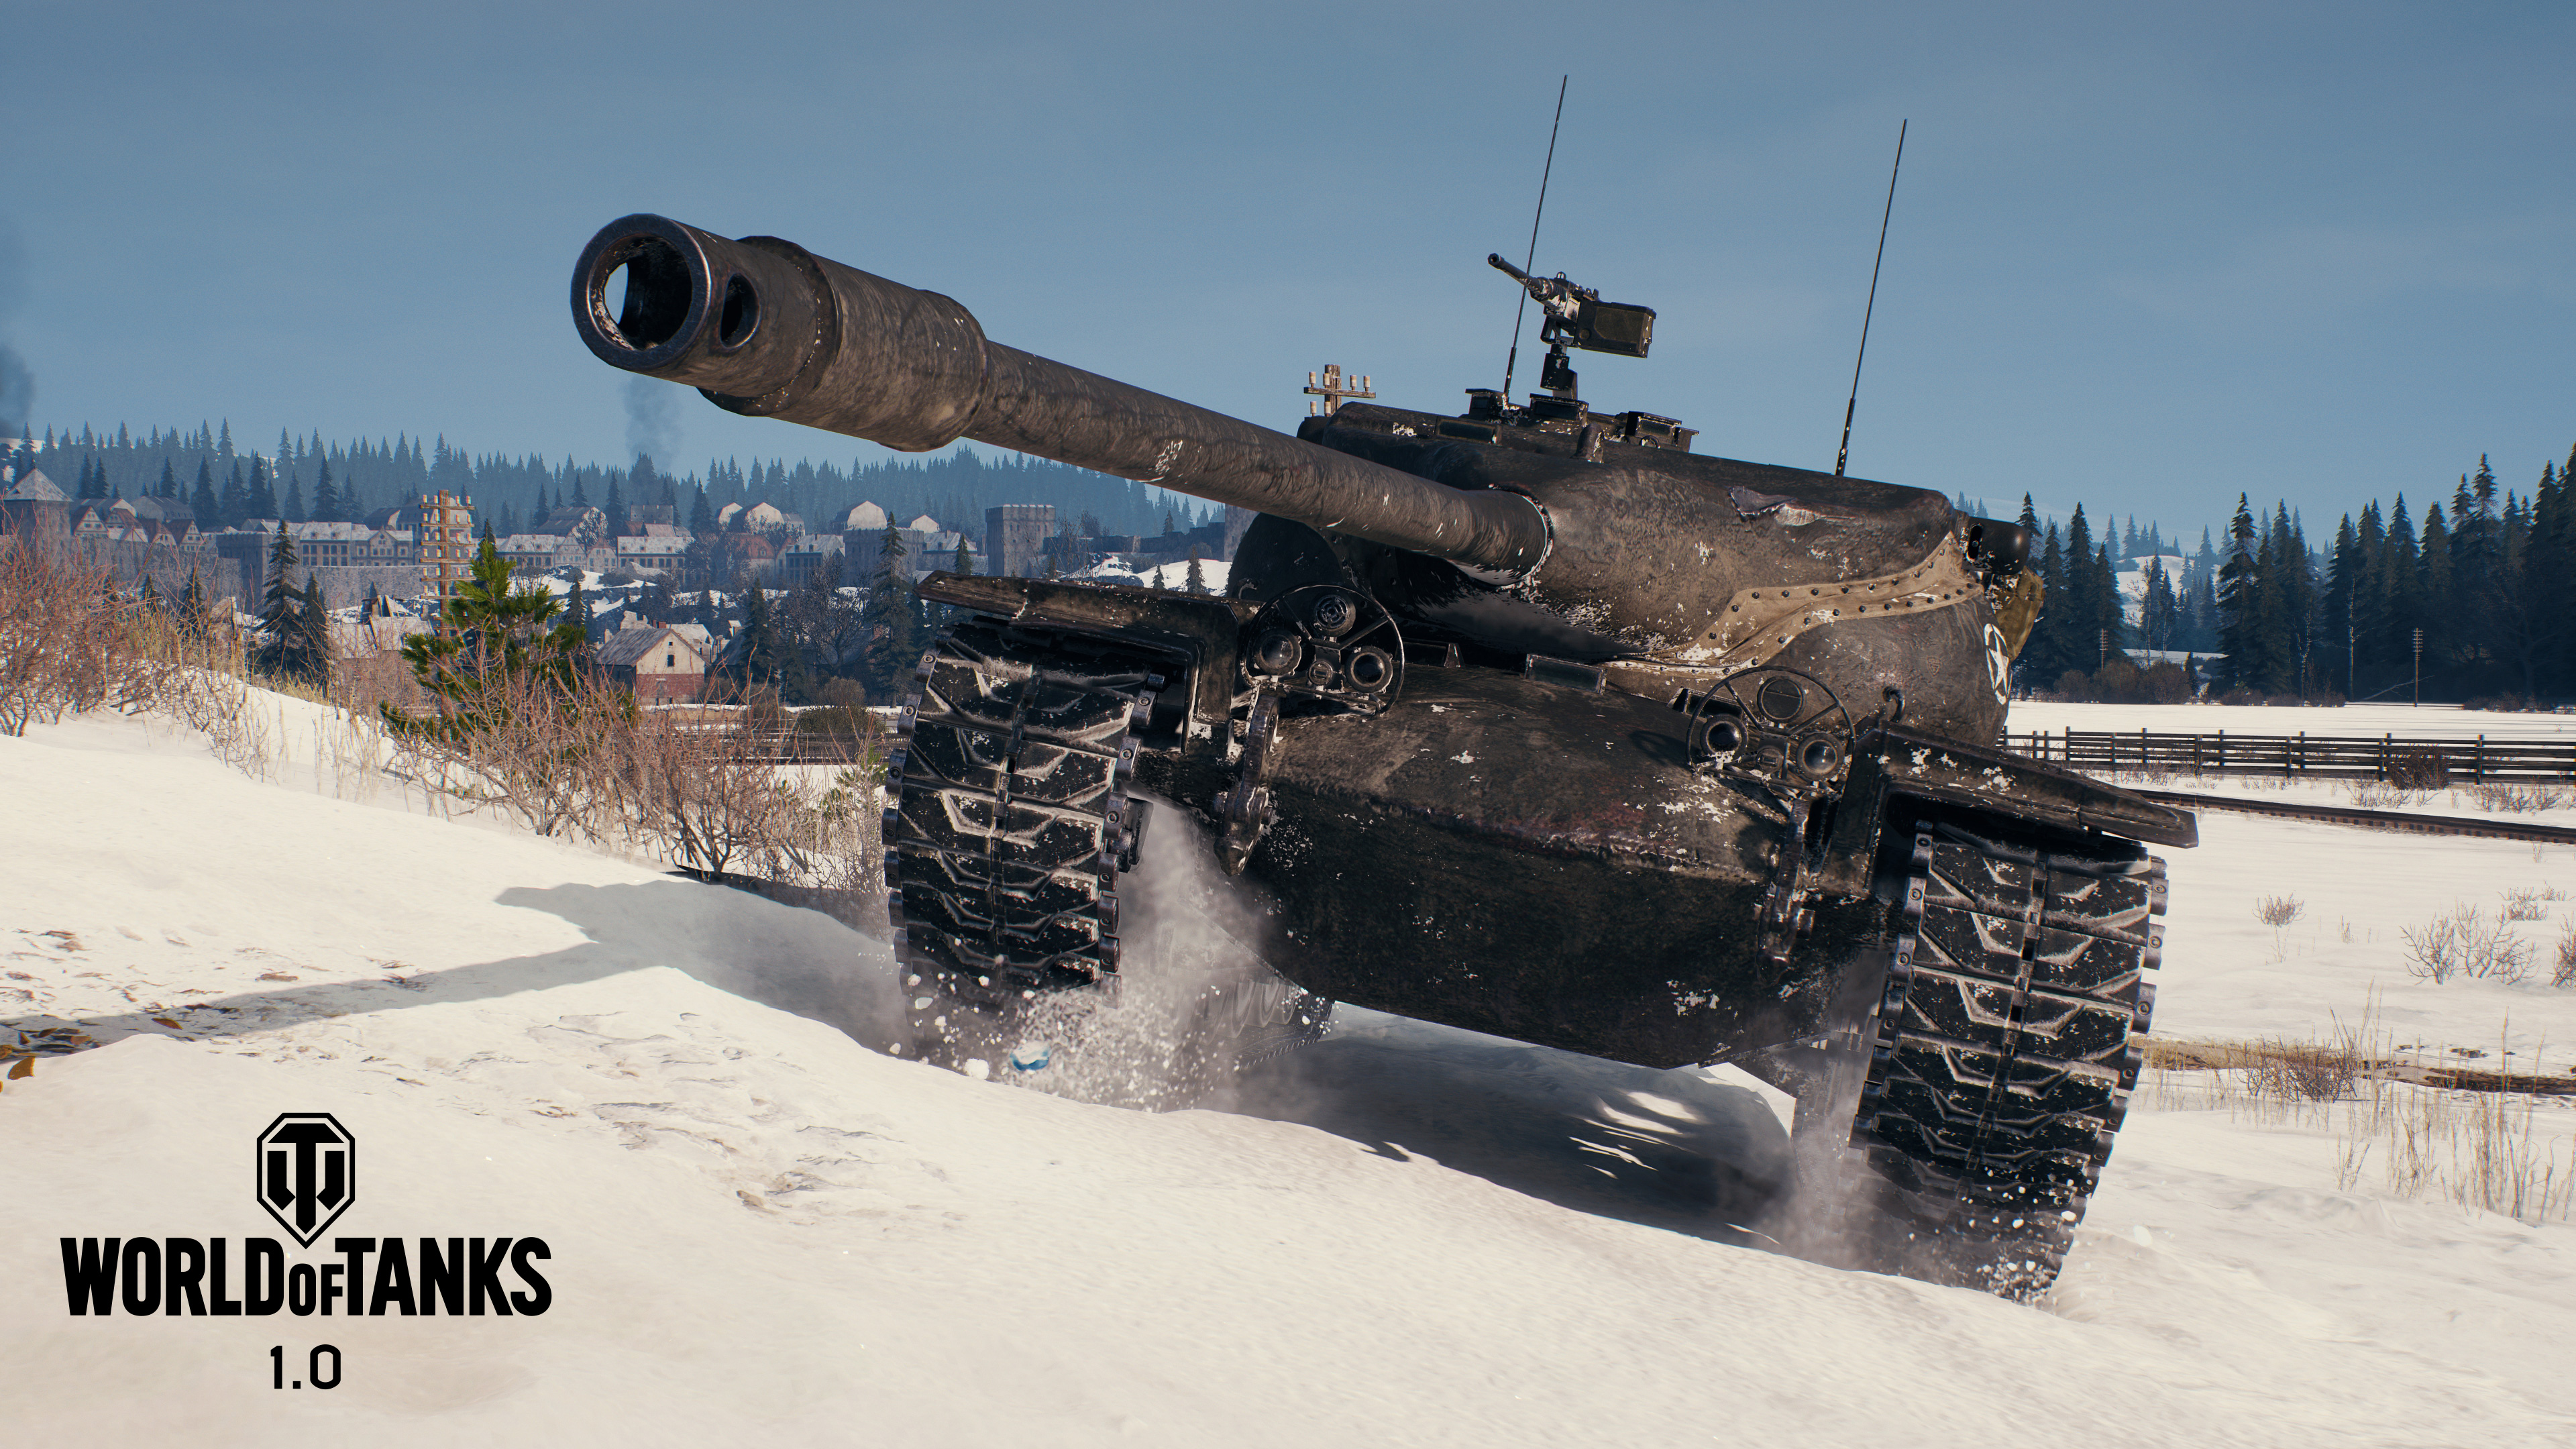 A tank rolls through the snow in World of Tanks 1.0